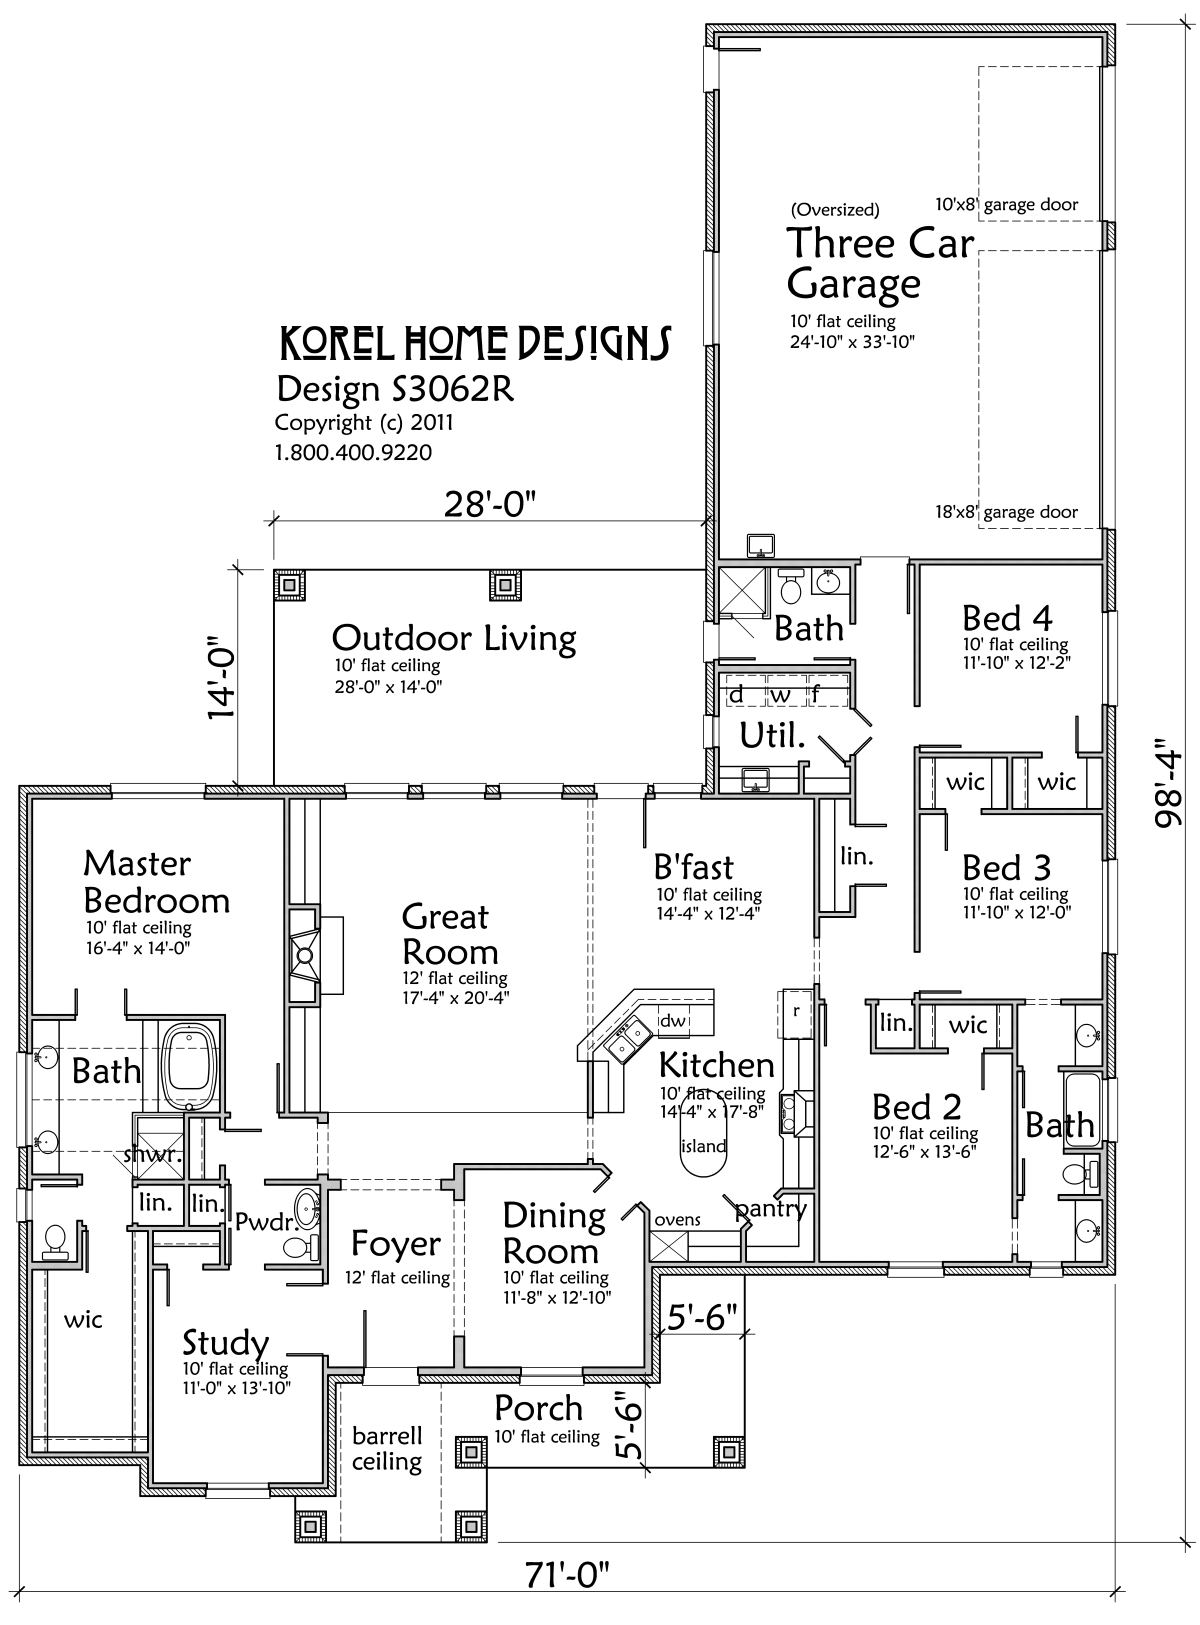 family home plan s3062r | texas house plans - over 700 proven home